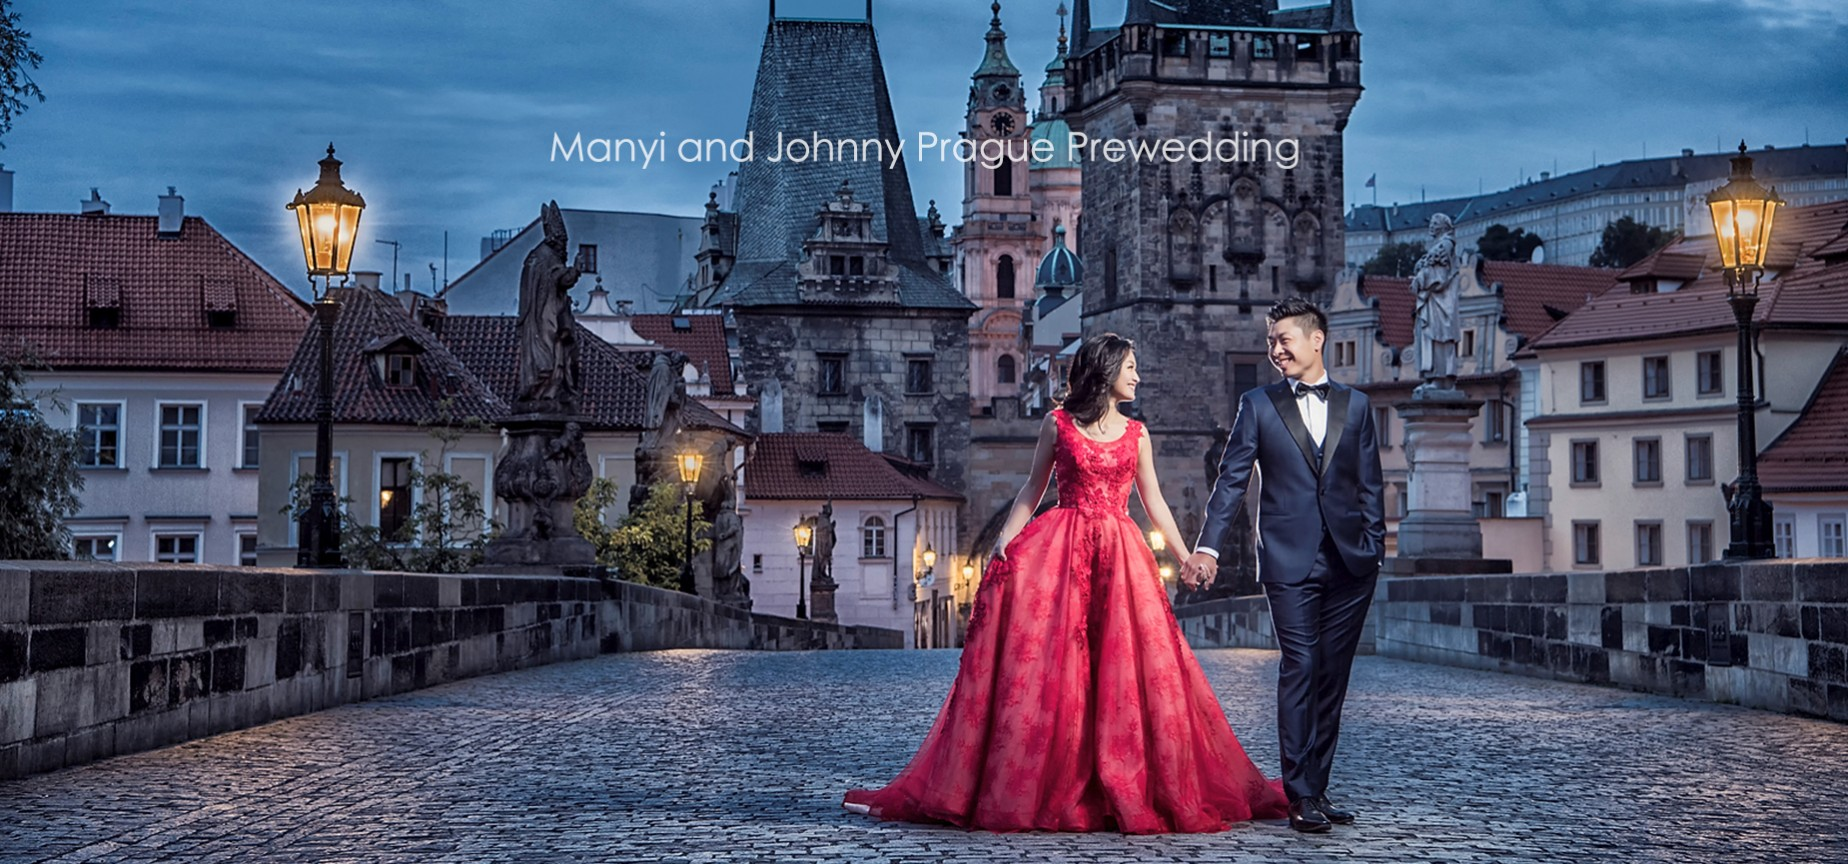 manyi and johnny prague prewedding video tour